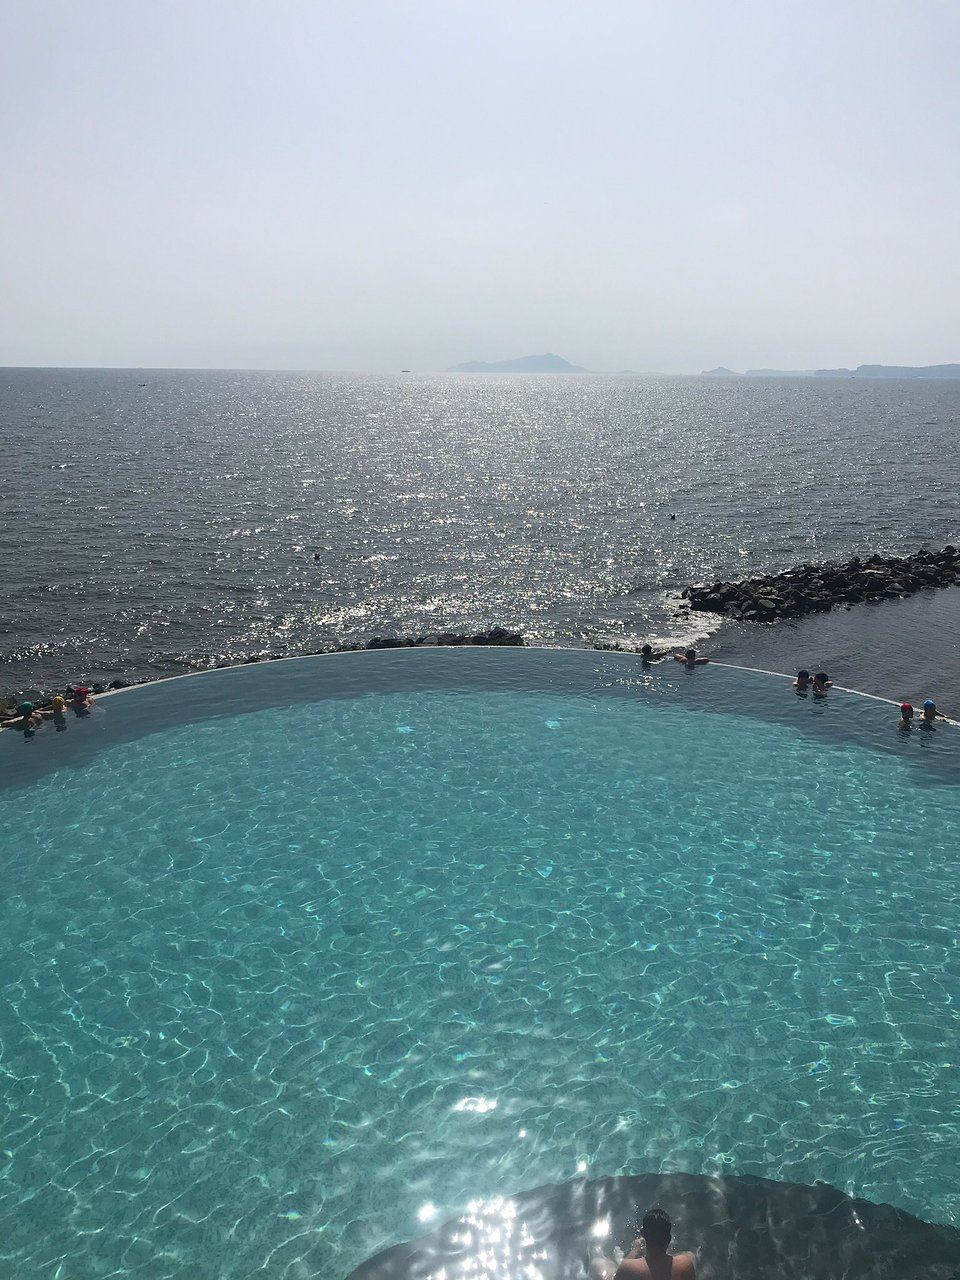 Piscina A Torre Del Greco piscine a torre del greco - 2020 all you need to know before